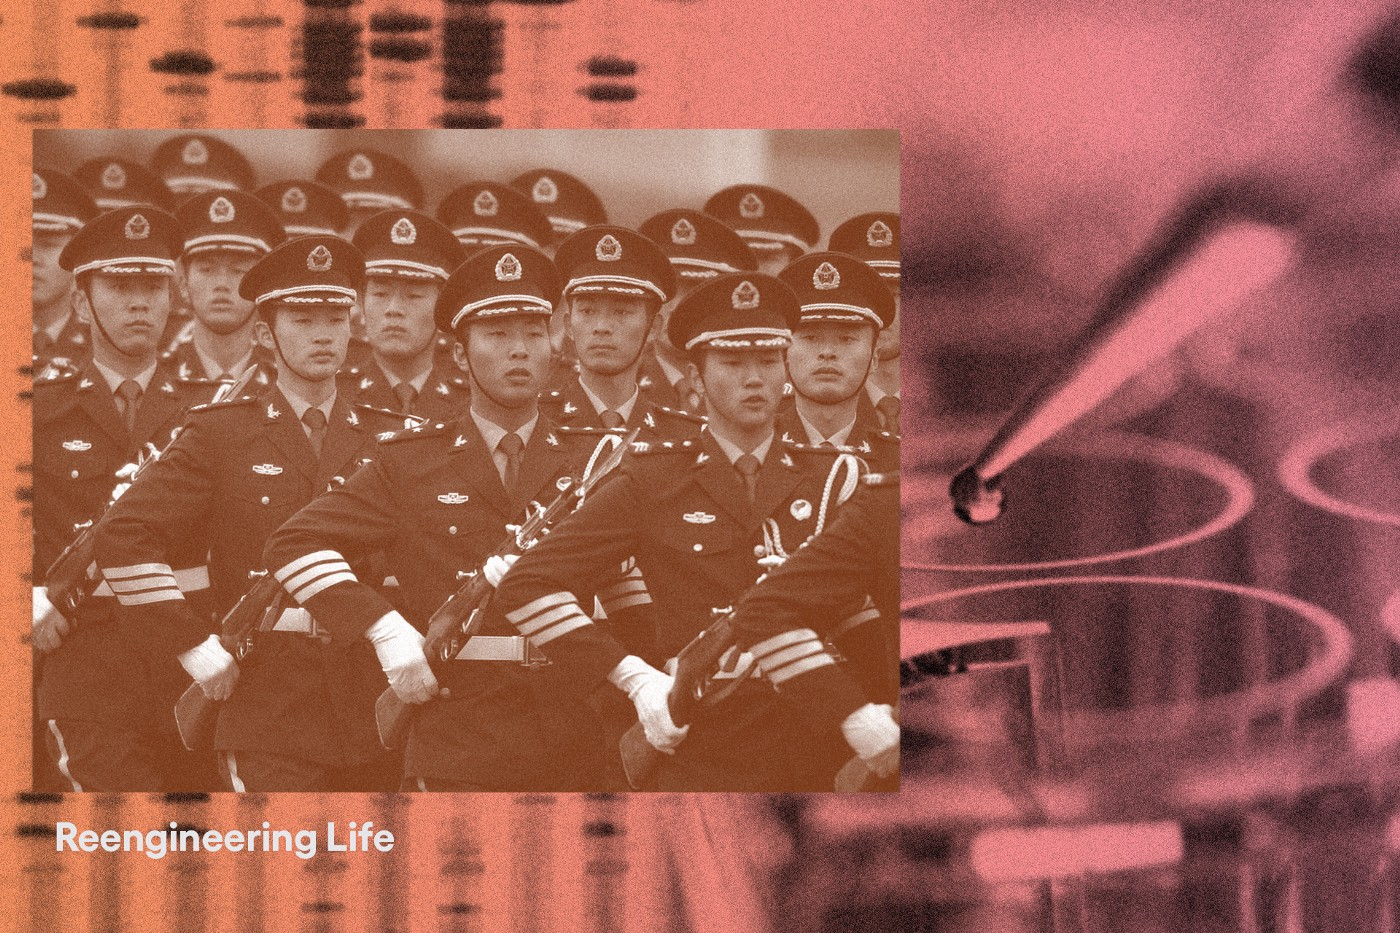 A photo of Chinese soldiers juxtaposed against photos of a DNA strip and a dropper with the text Reengineering Life